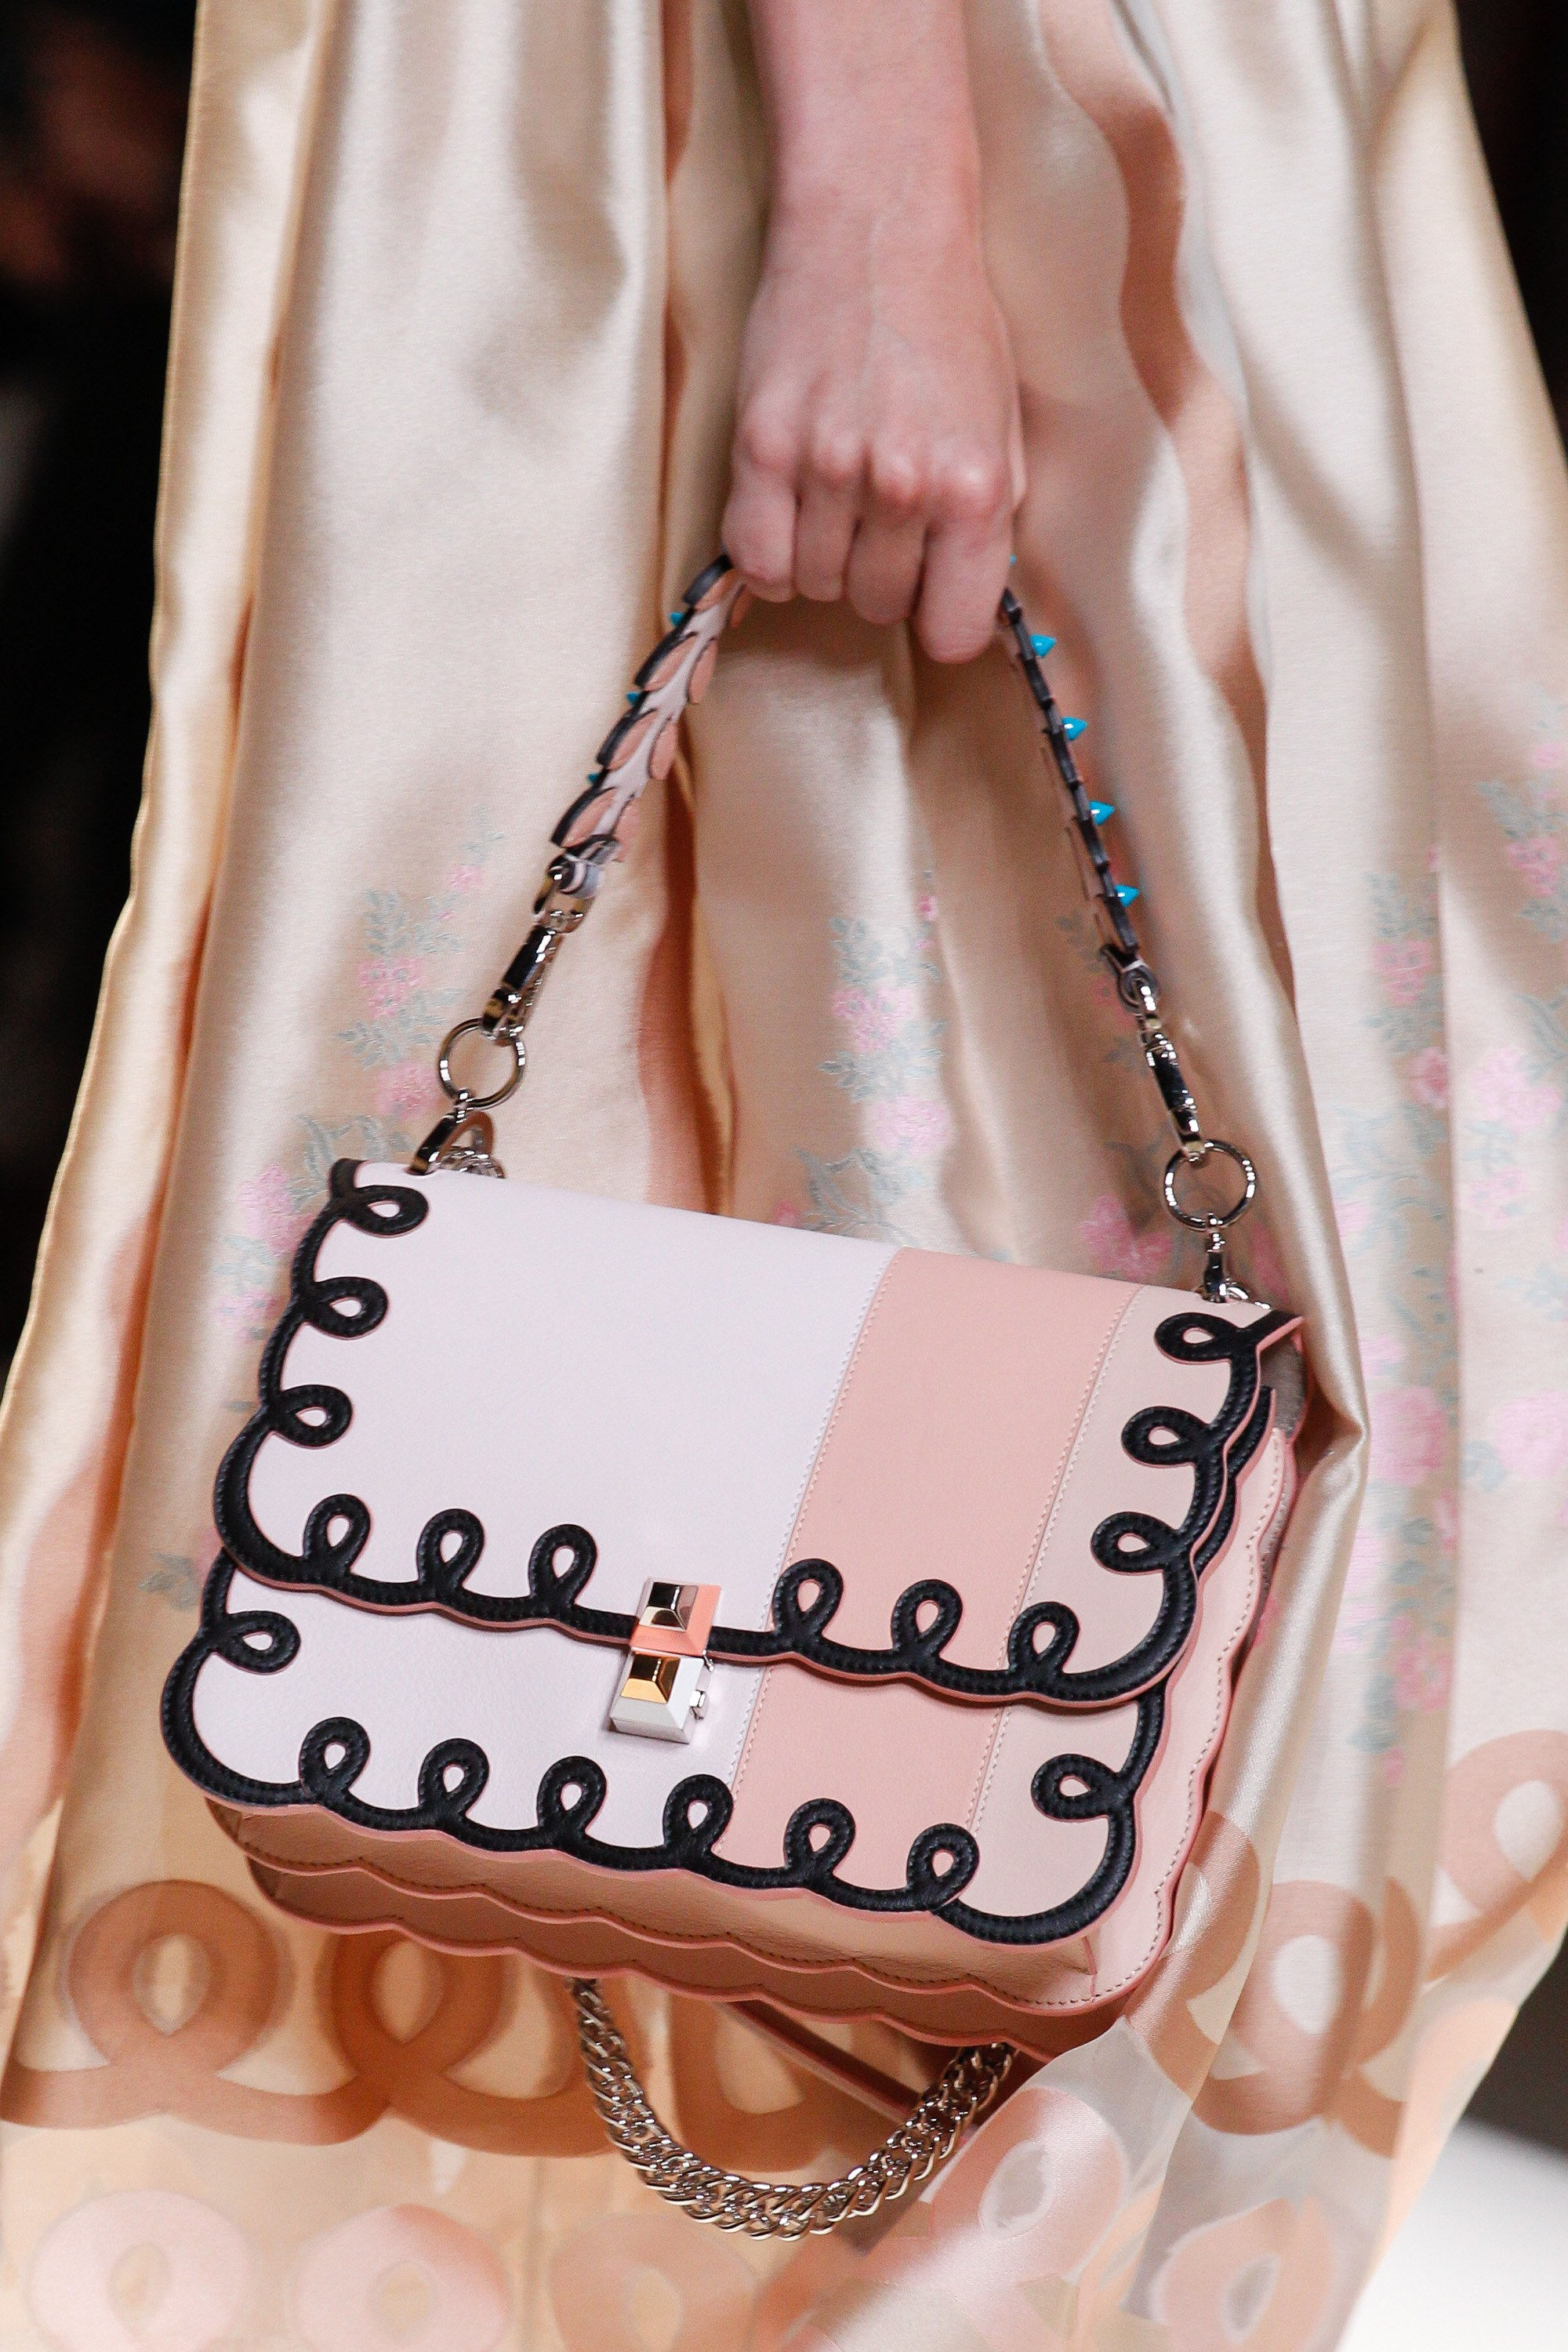 Fendi Spring Summer 2017 Runway Bag Collection Spotted